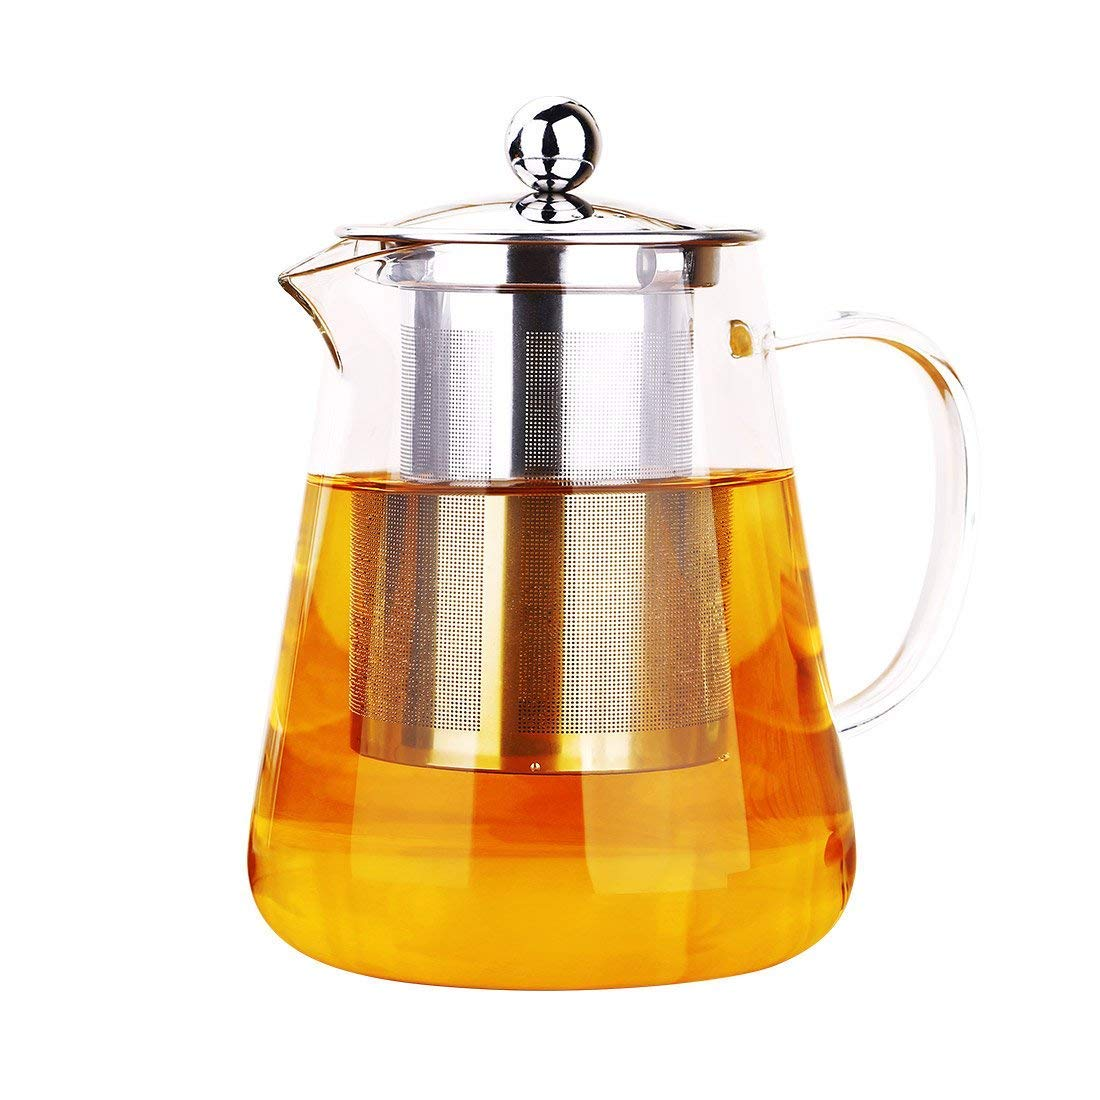 Glass Teapot 350 ml PLUIESOLEIL with Heat Resistant Stainless Steel Infuser Perfect for Tea and Coffee 300ml